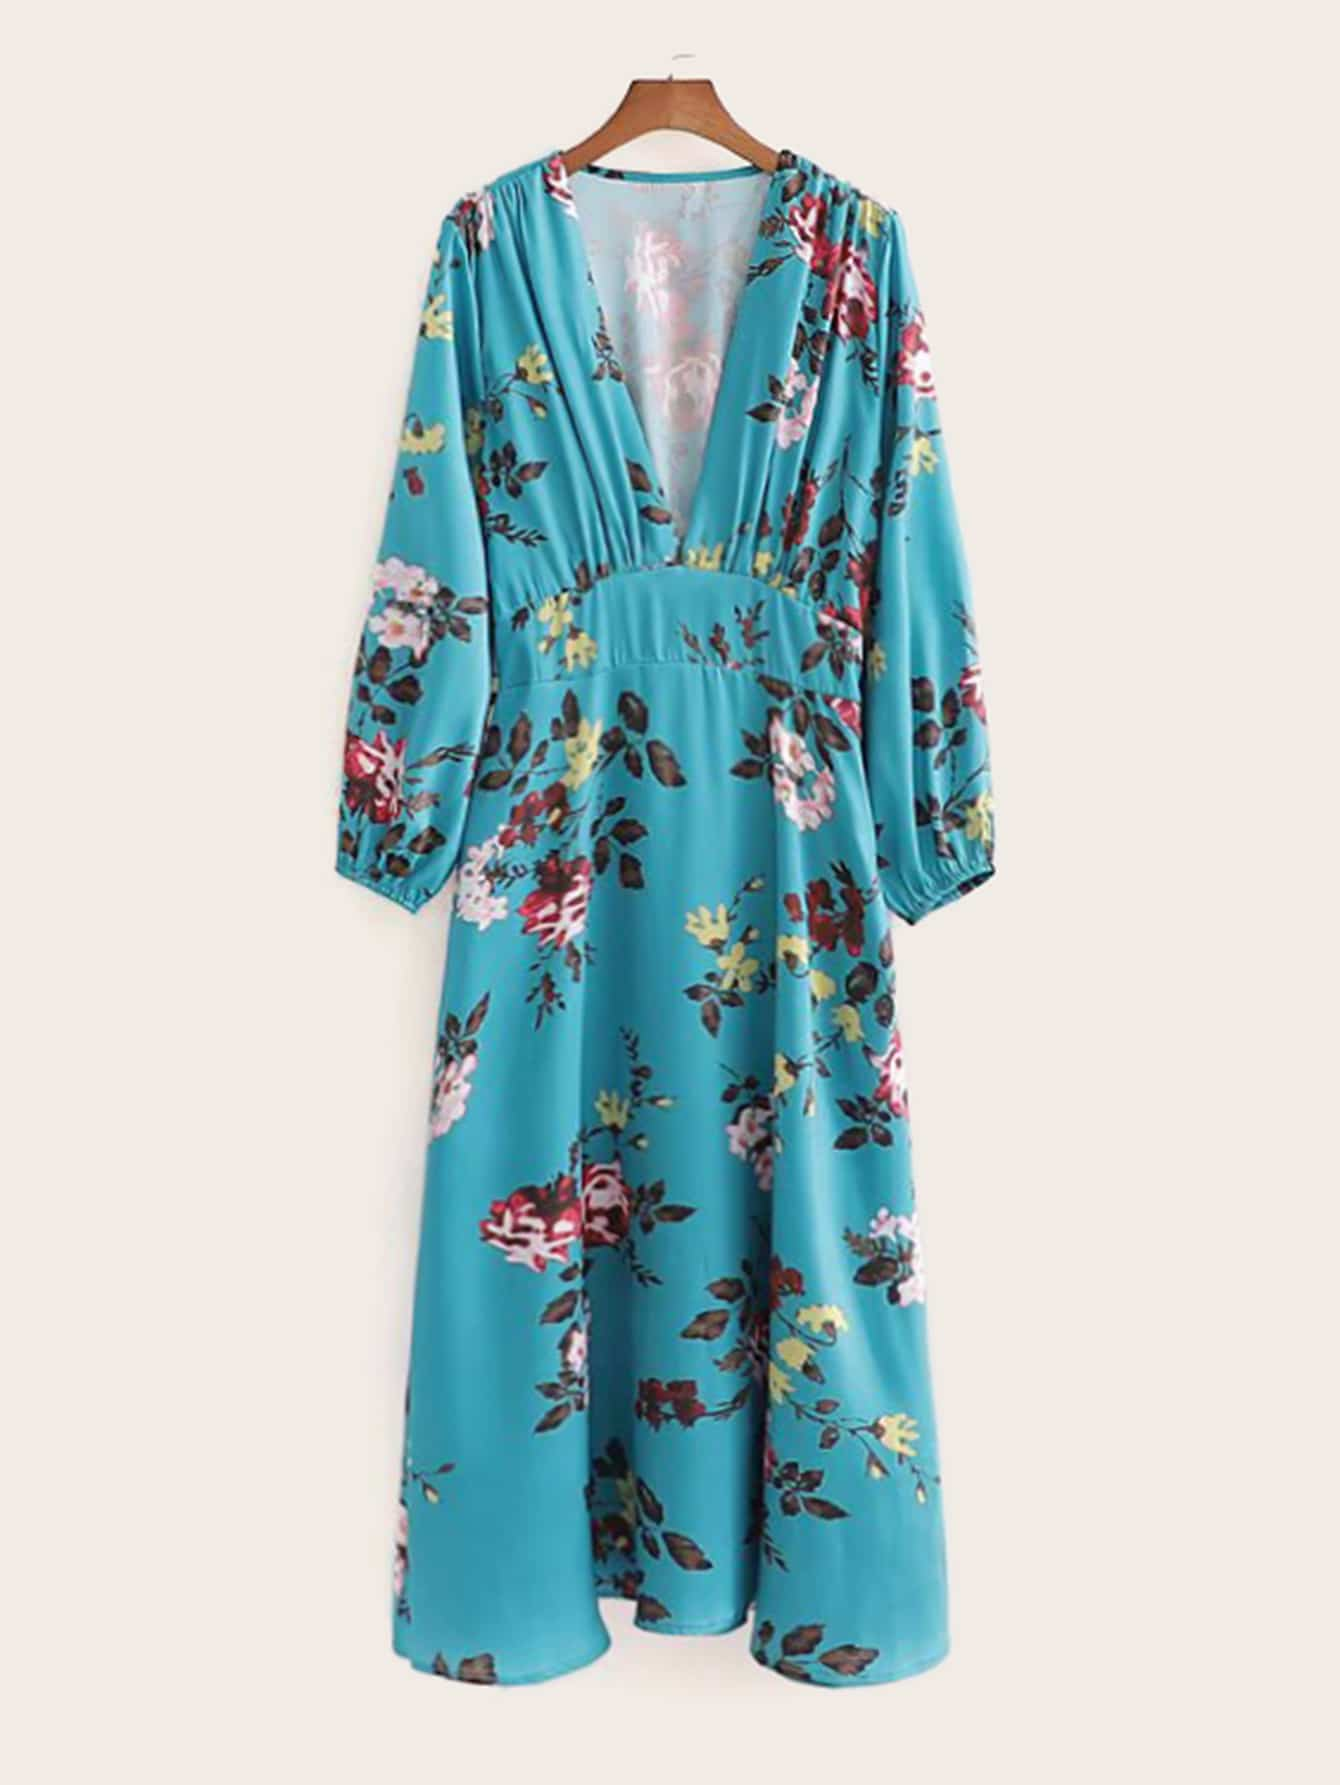 Floral Print Plunging Neck Dress